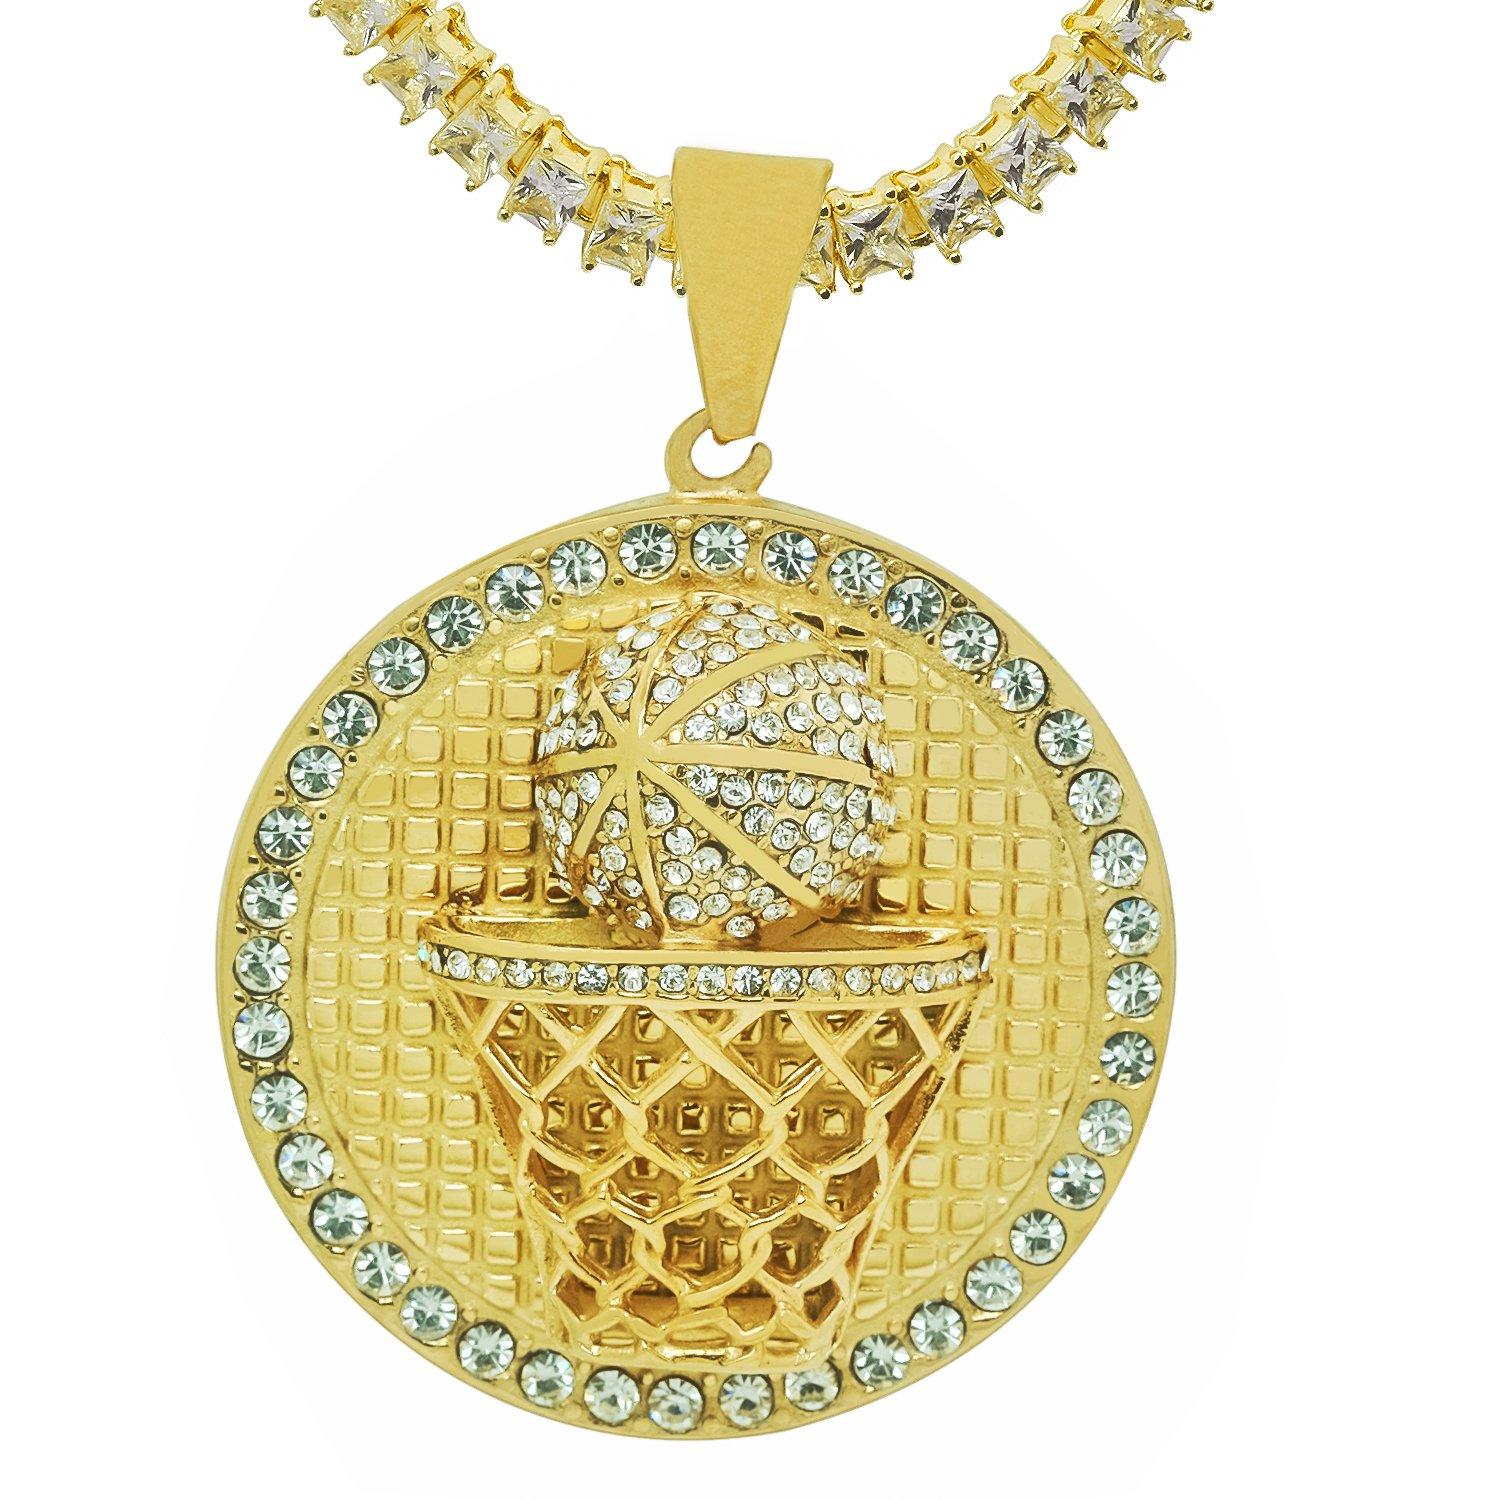 Stainless Steel Yellow Gold-Tone Iced Out Hip Hop Bling Round Basketball Hoop Pendant 1 Row Square Cubic Zirconia Princess Cut Stone Tennis Chain 18 Necklace Choker Chain